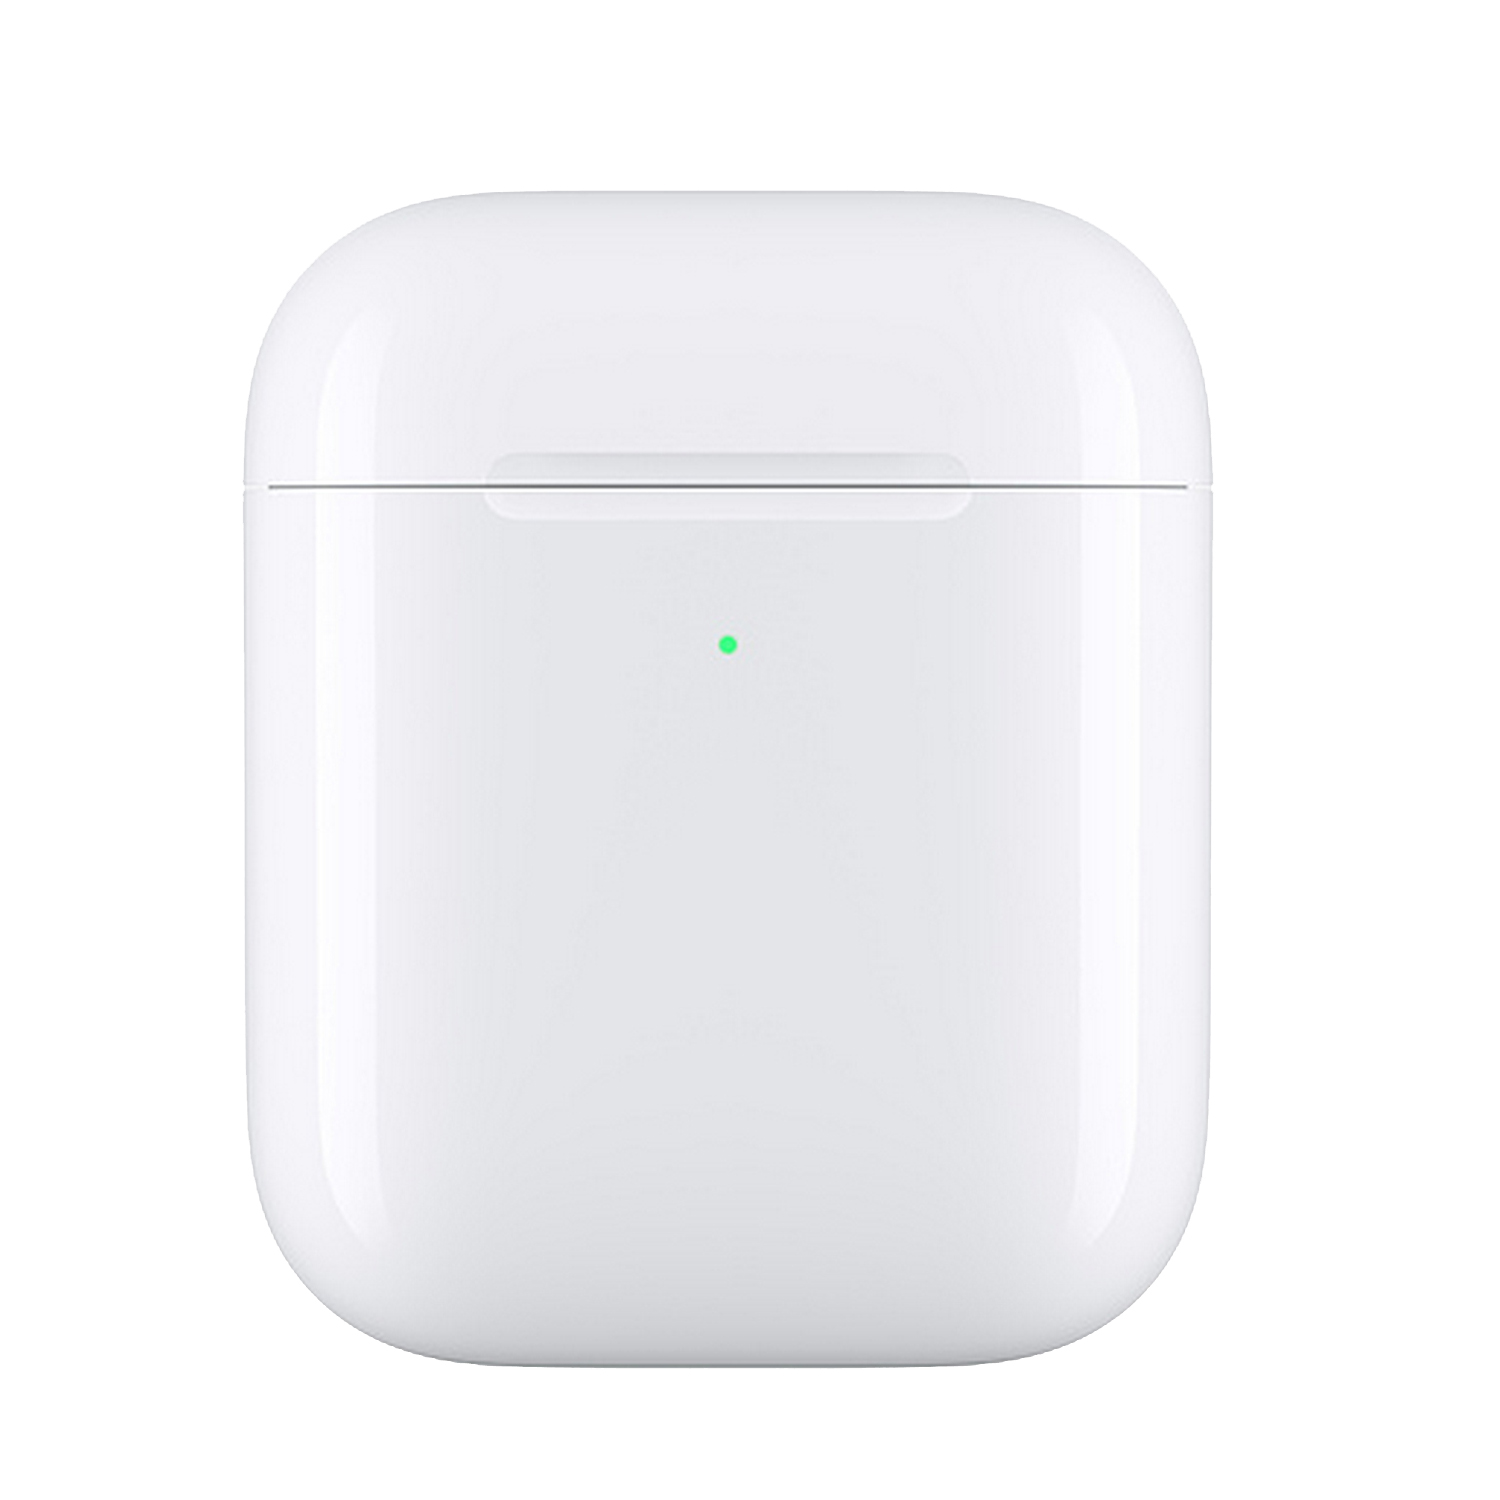 Desktops Apple Wireless Charging Case for AirPods Ref MR8U2ZM/A